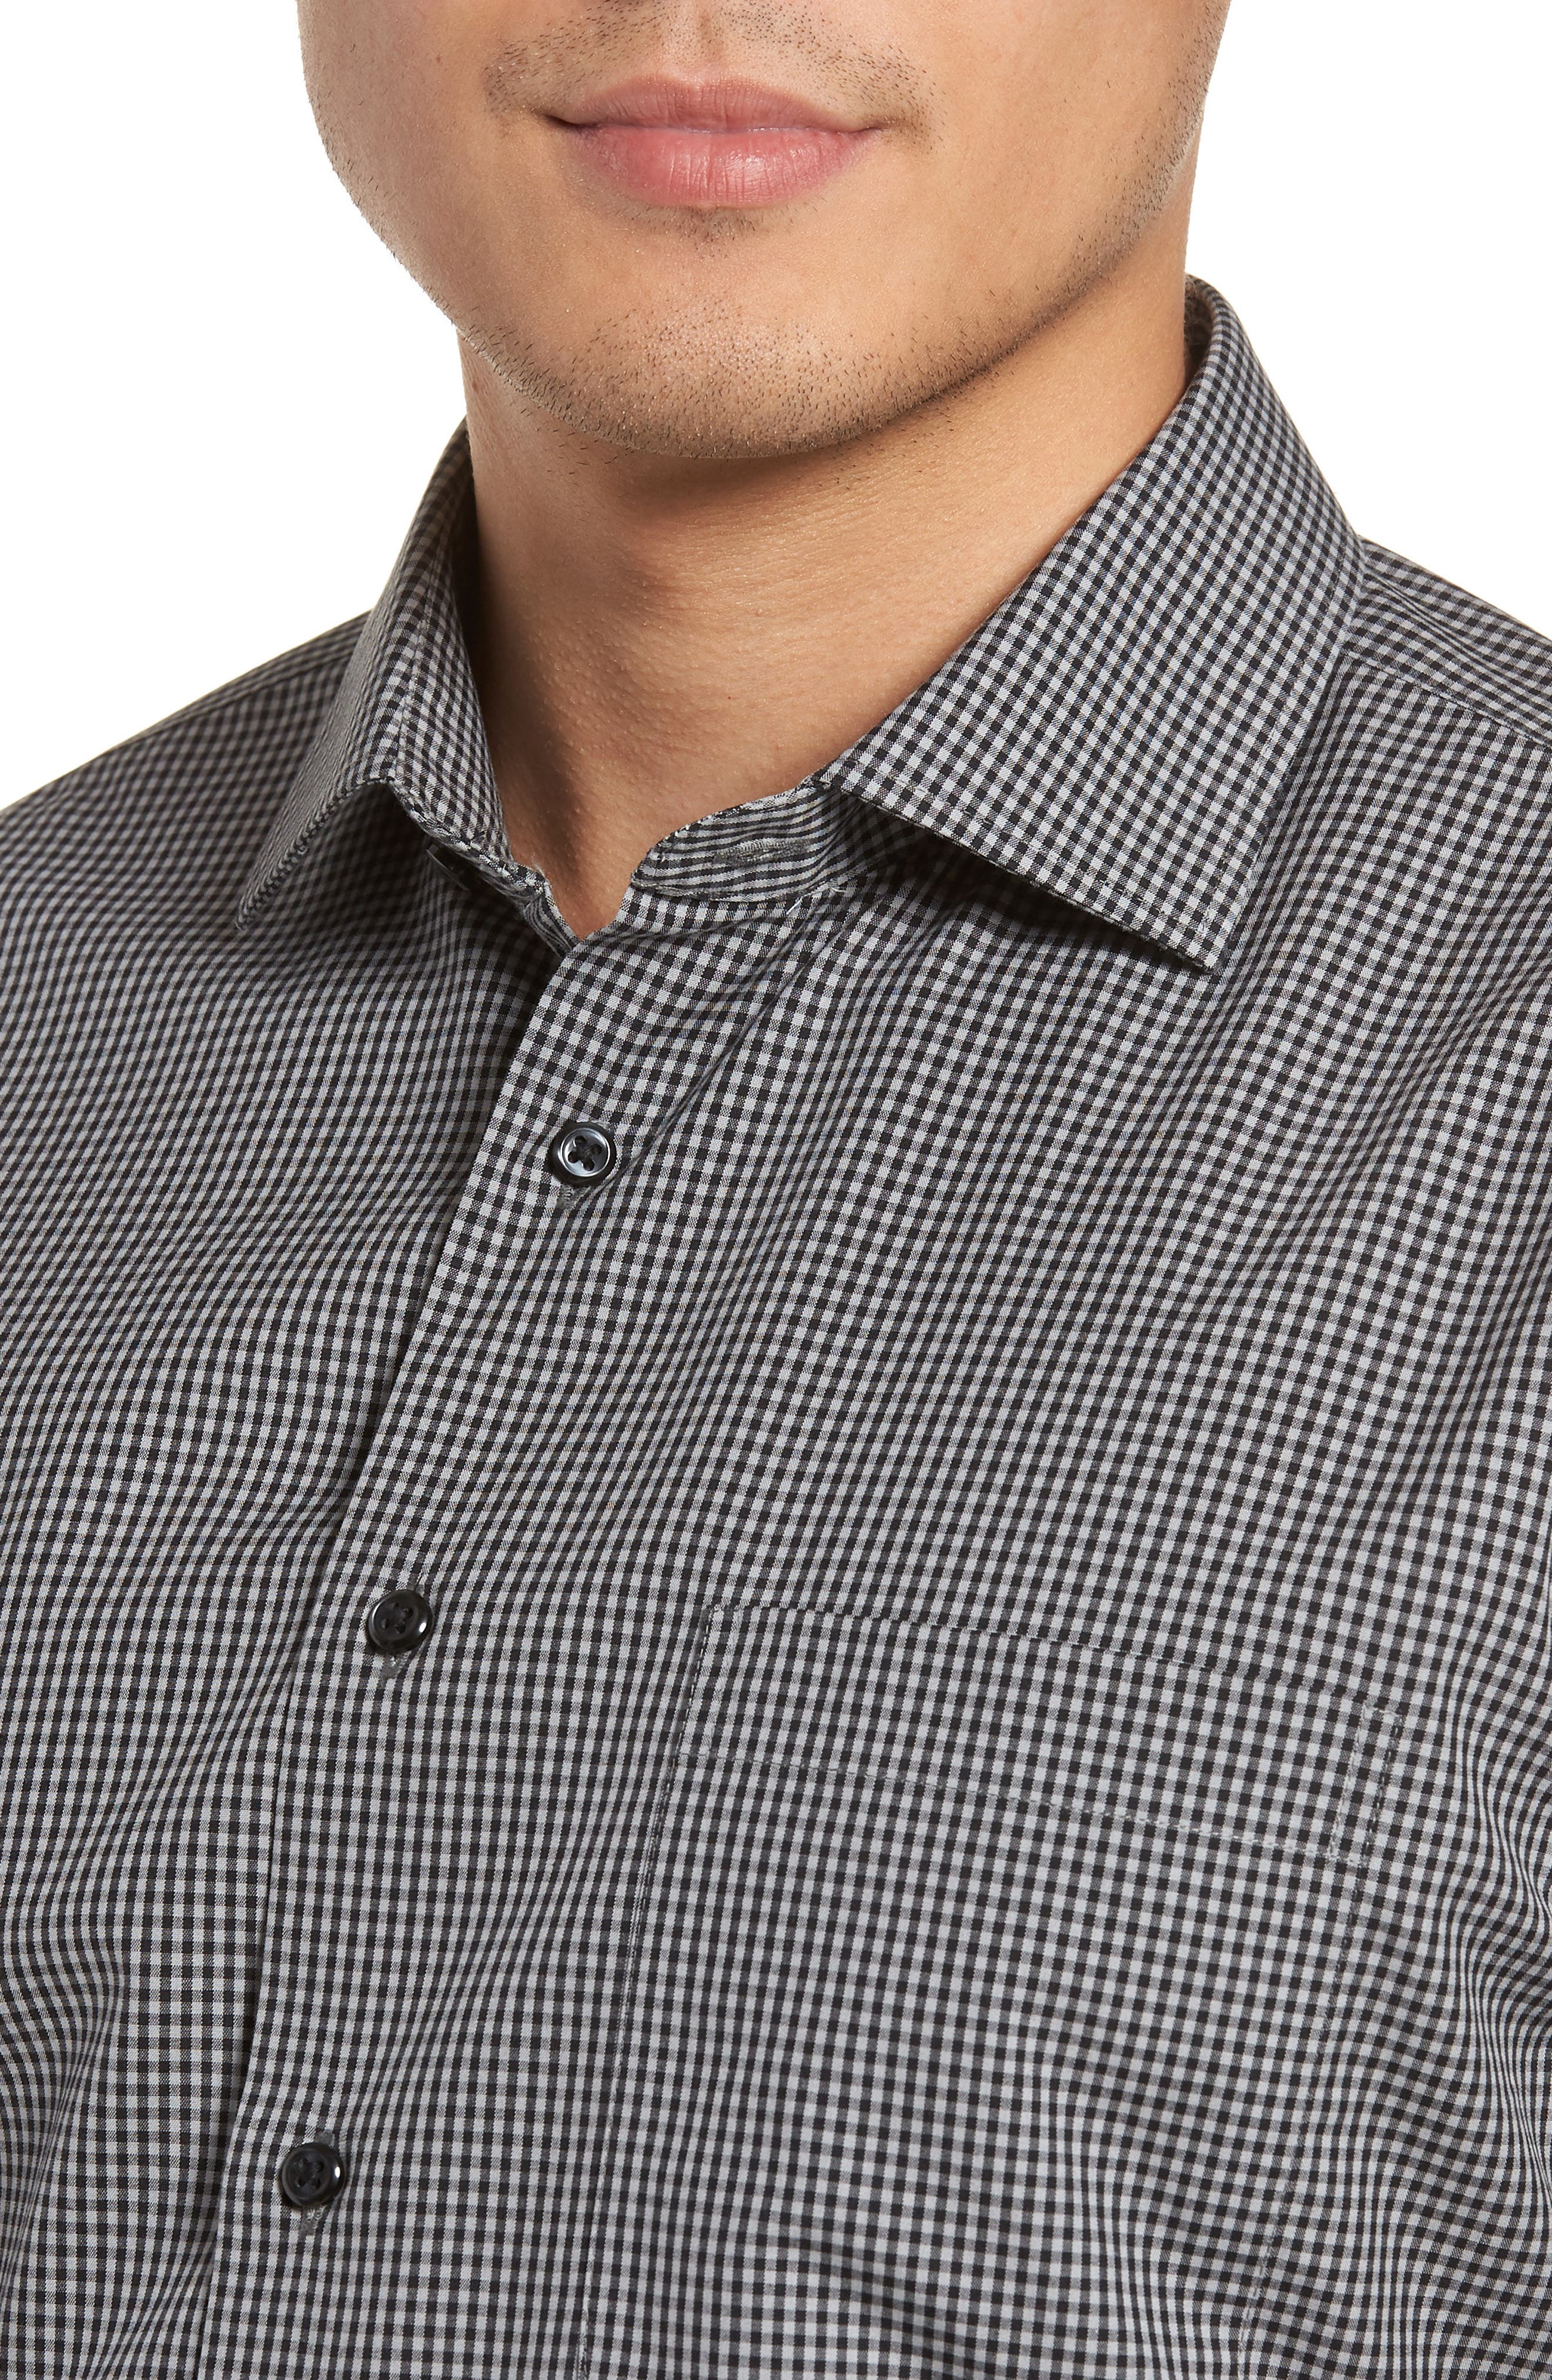 Smartcare<sup>™</sup> Trim Fit Check Dress Shirt,                             Alternate thumbnail 2, color,                             001